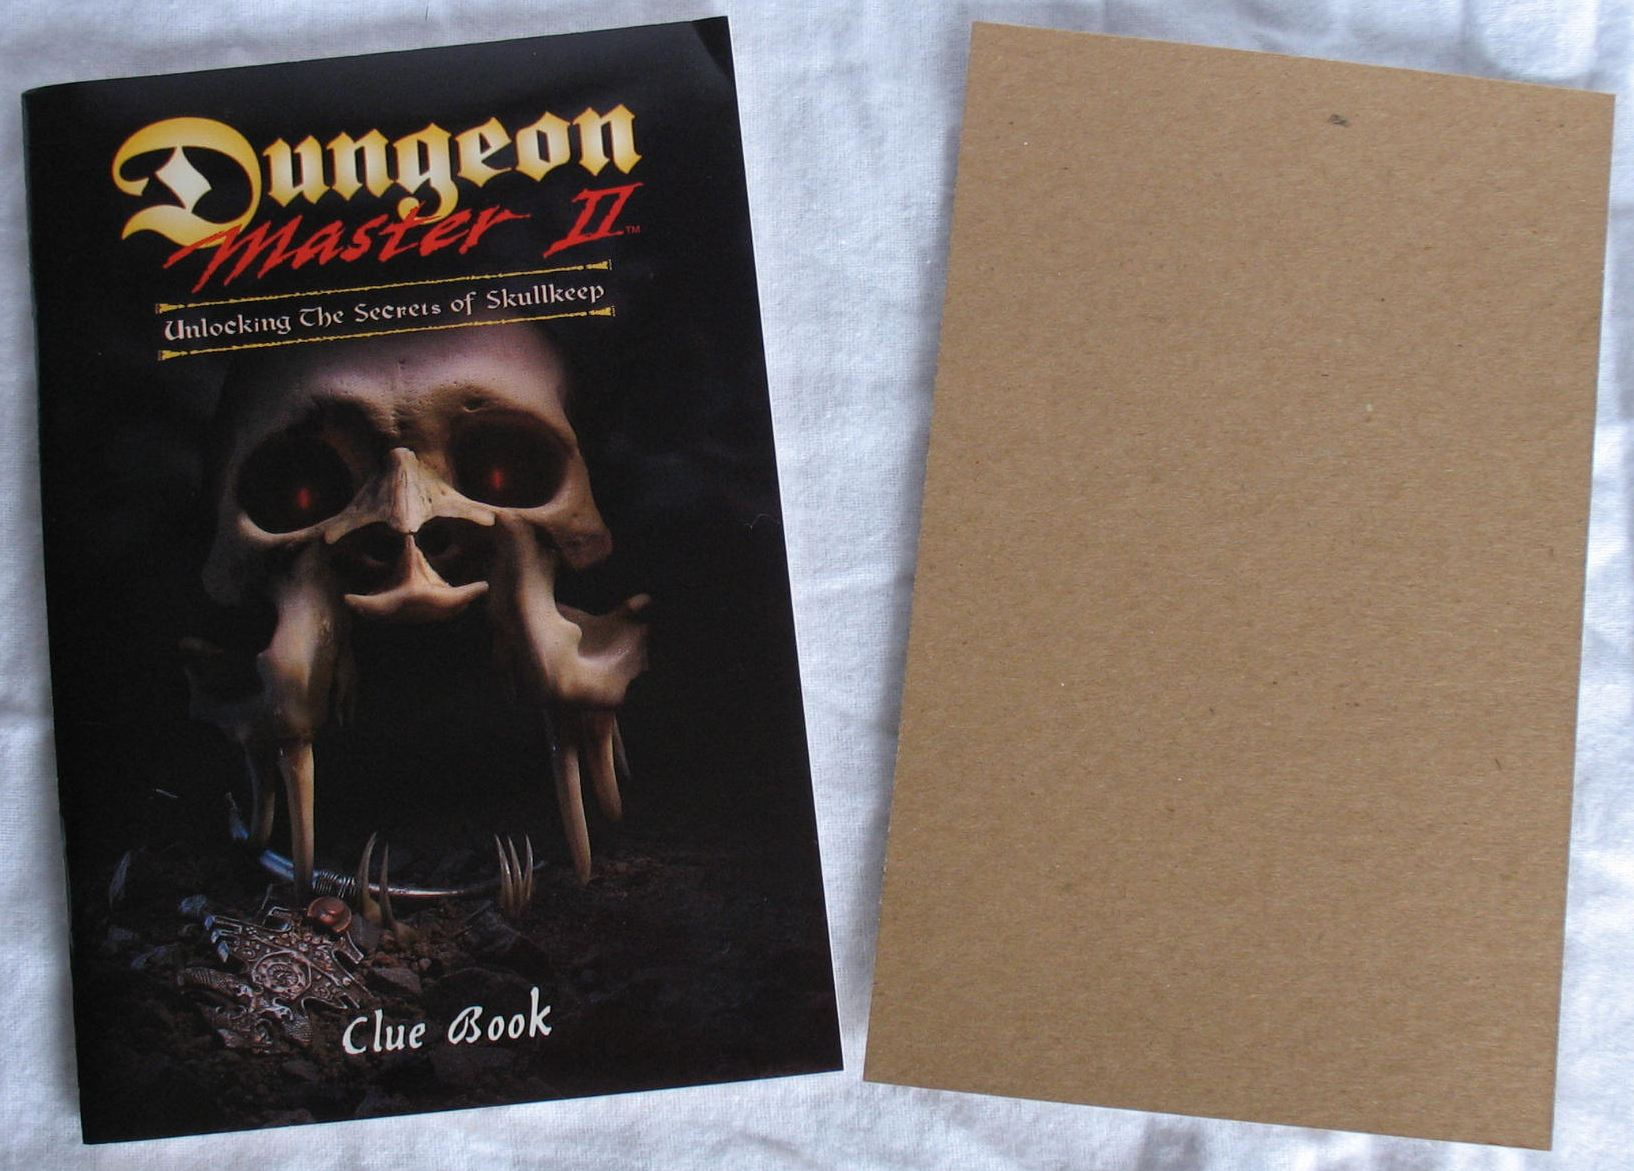 Hint Book - Dungeon Master II Clue Book - US - Cardboard - Front - Photo